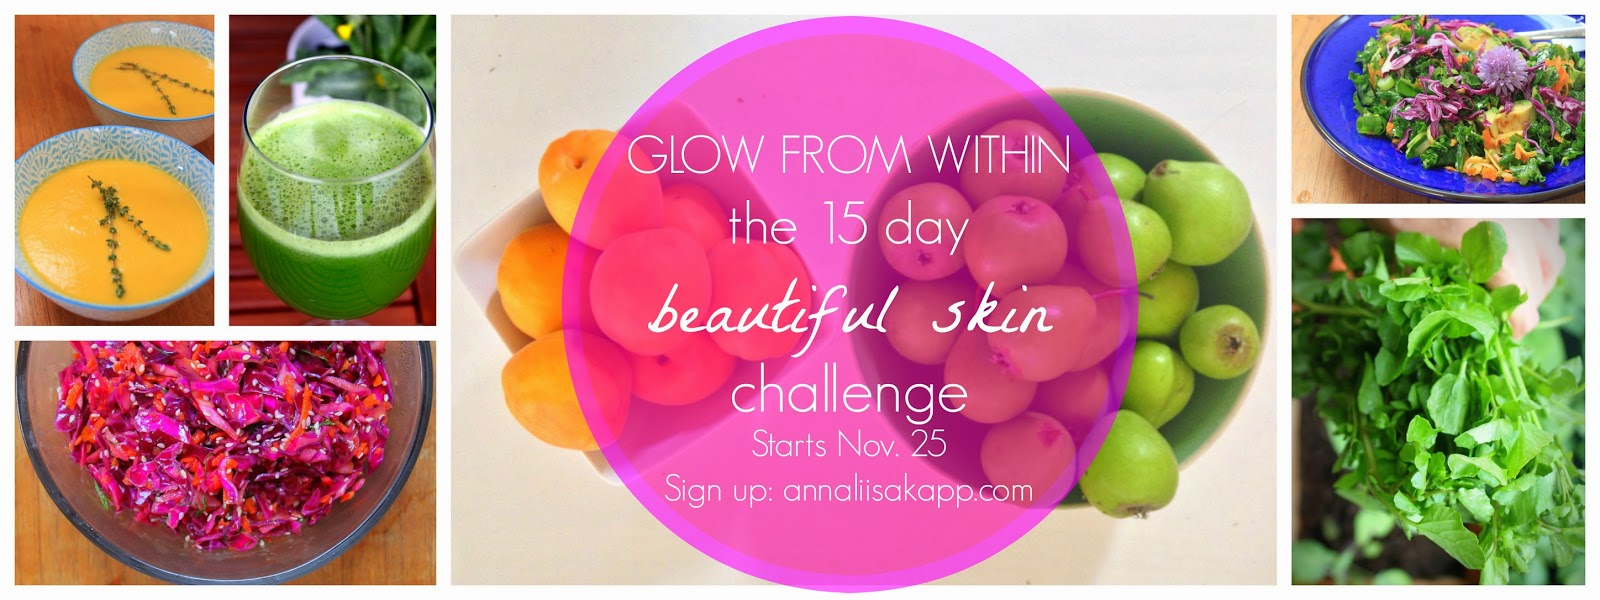 Free online motivation challenge: Healthy beautiful skin from within